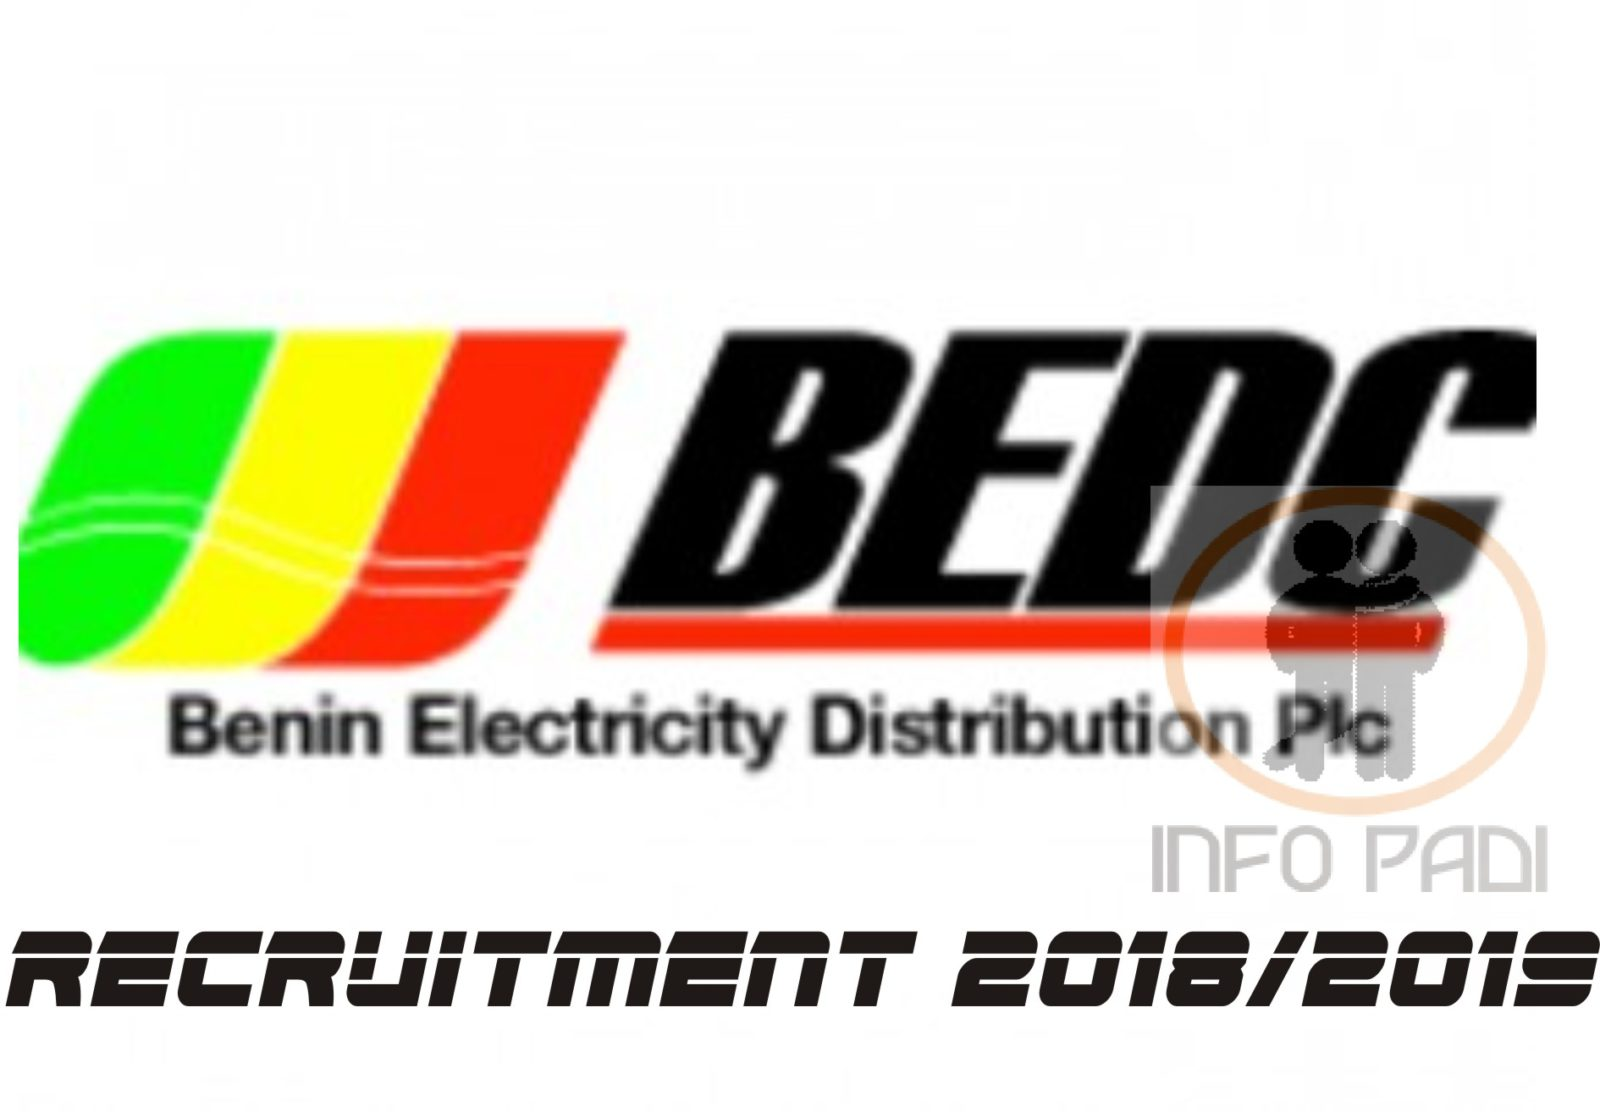 Benin Electricity Distribution Plc (BEDC) Recruitment 2018- how to successfully apply for the job